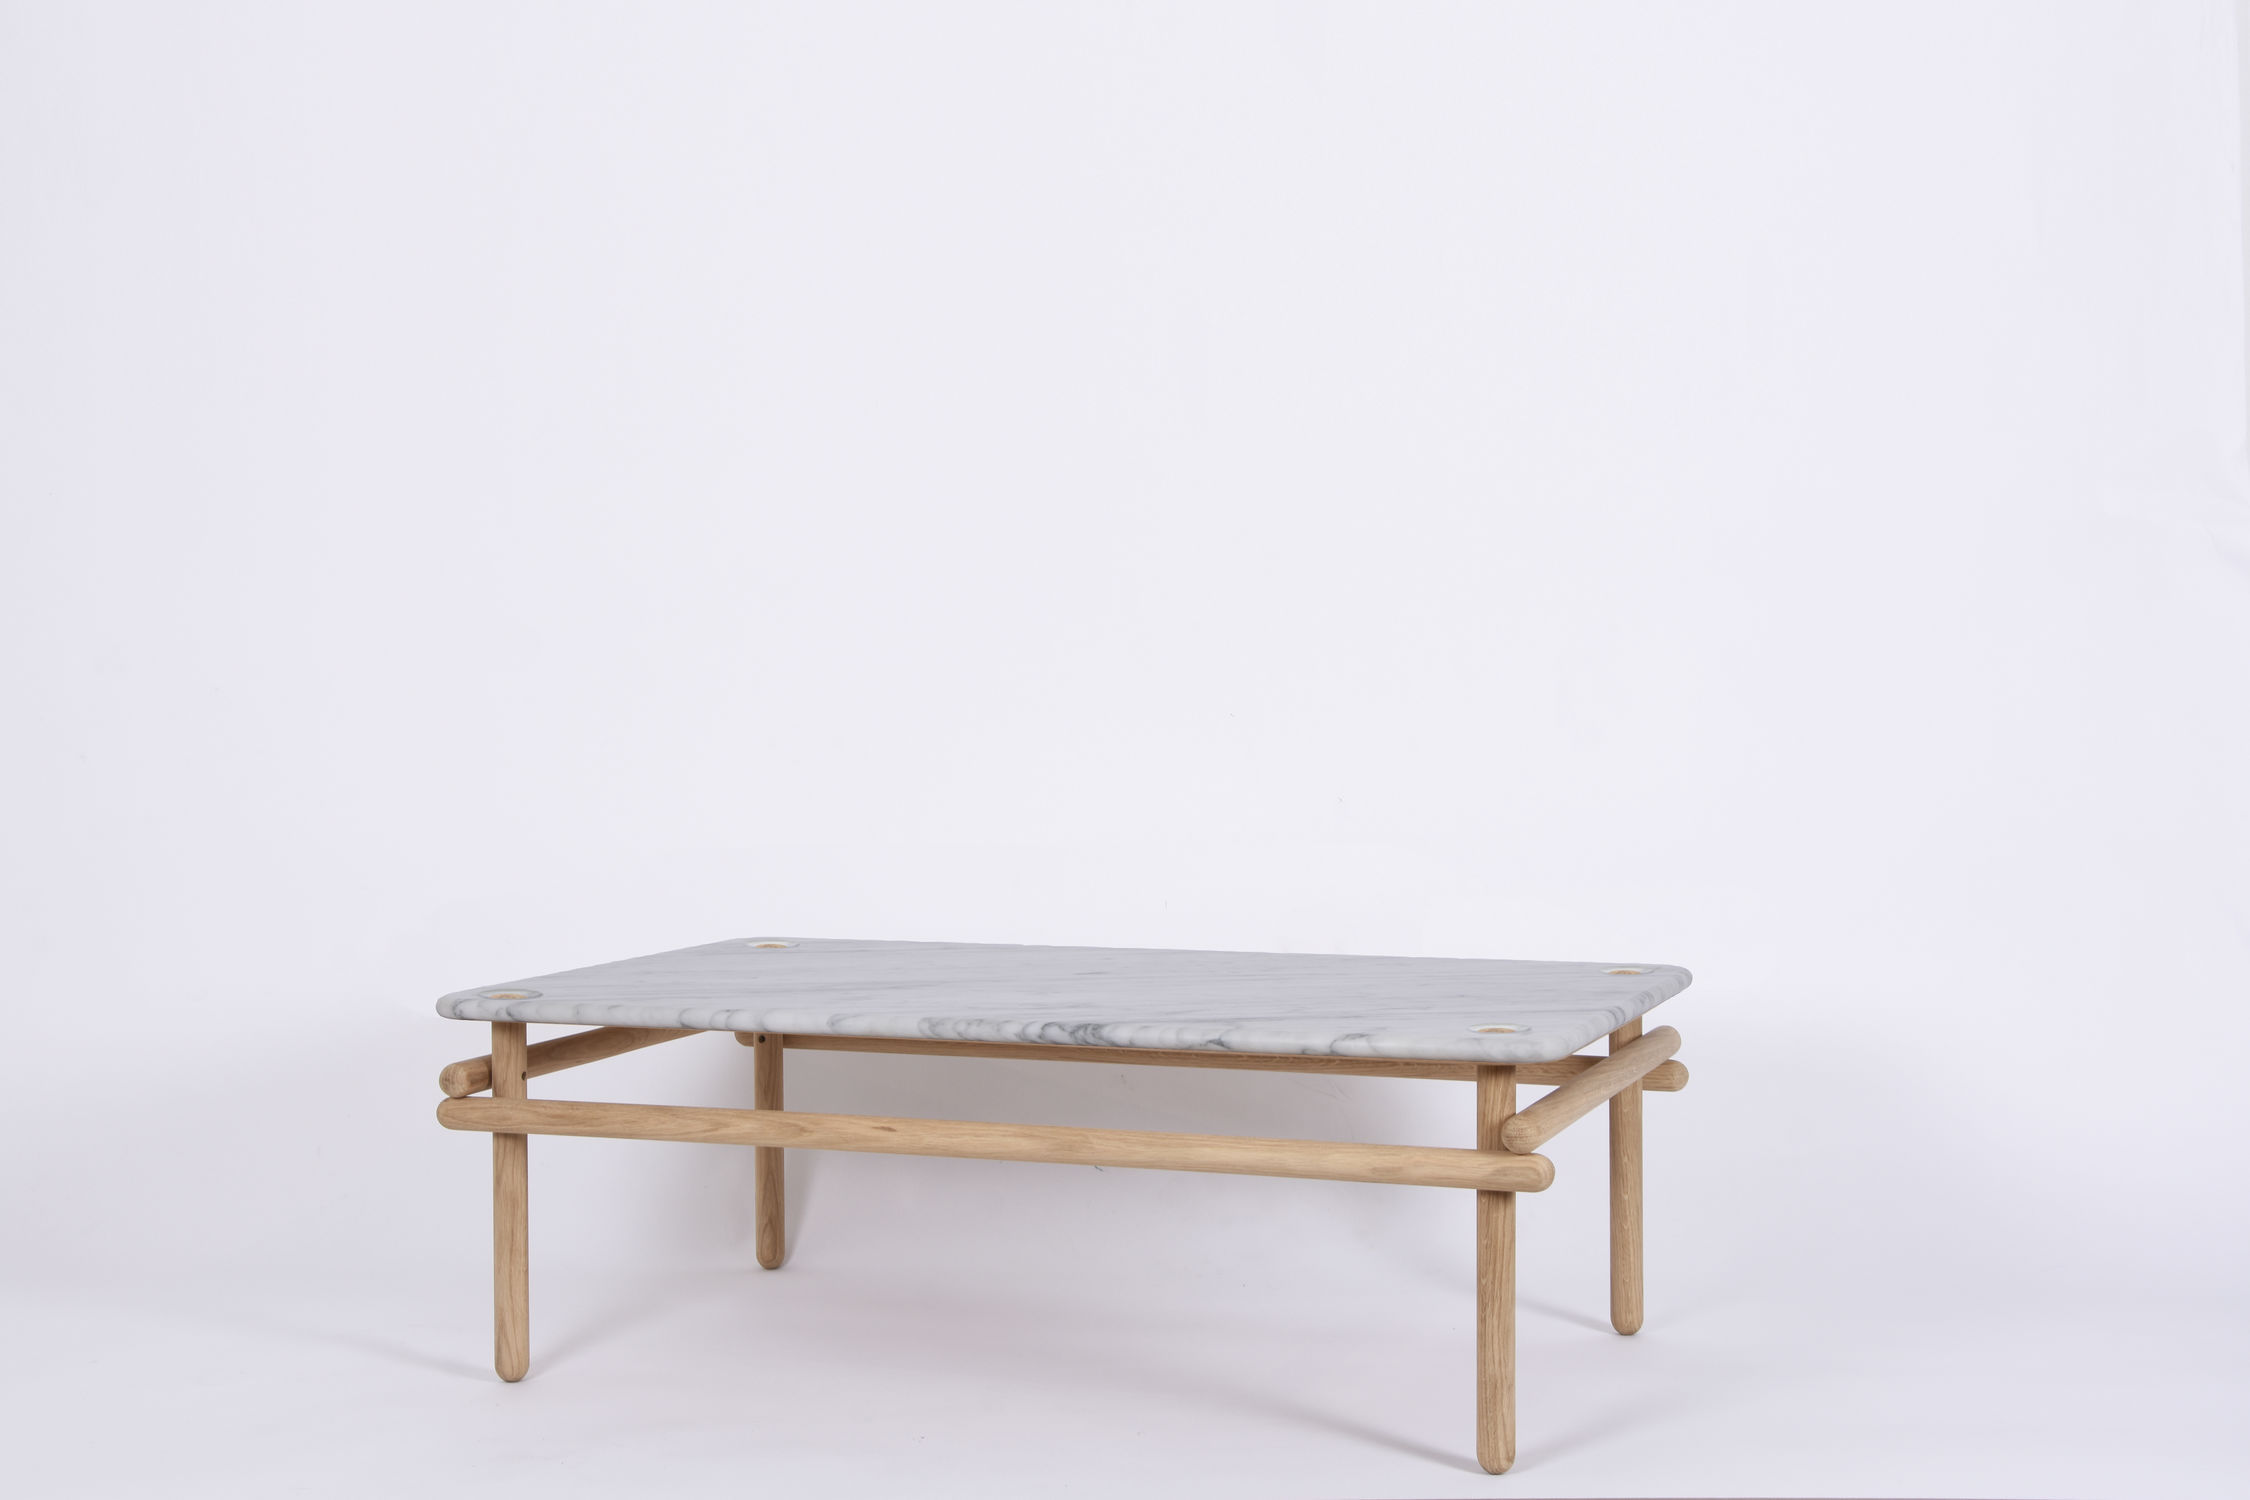 Table Basse Studio Contemporary Coffee Table Marble Solid Wood Natural Oak